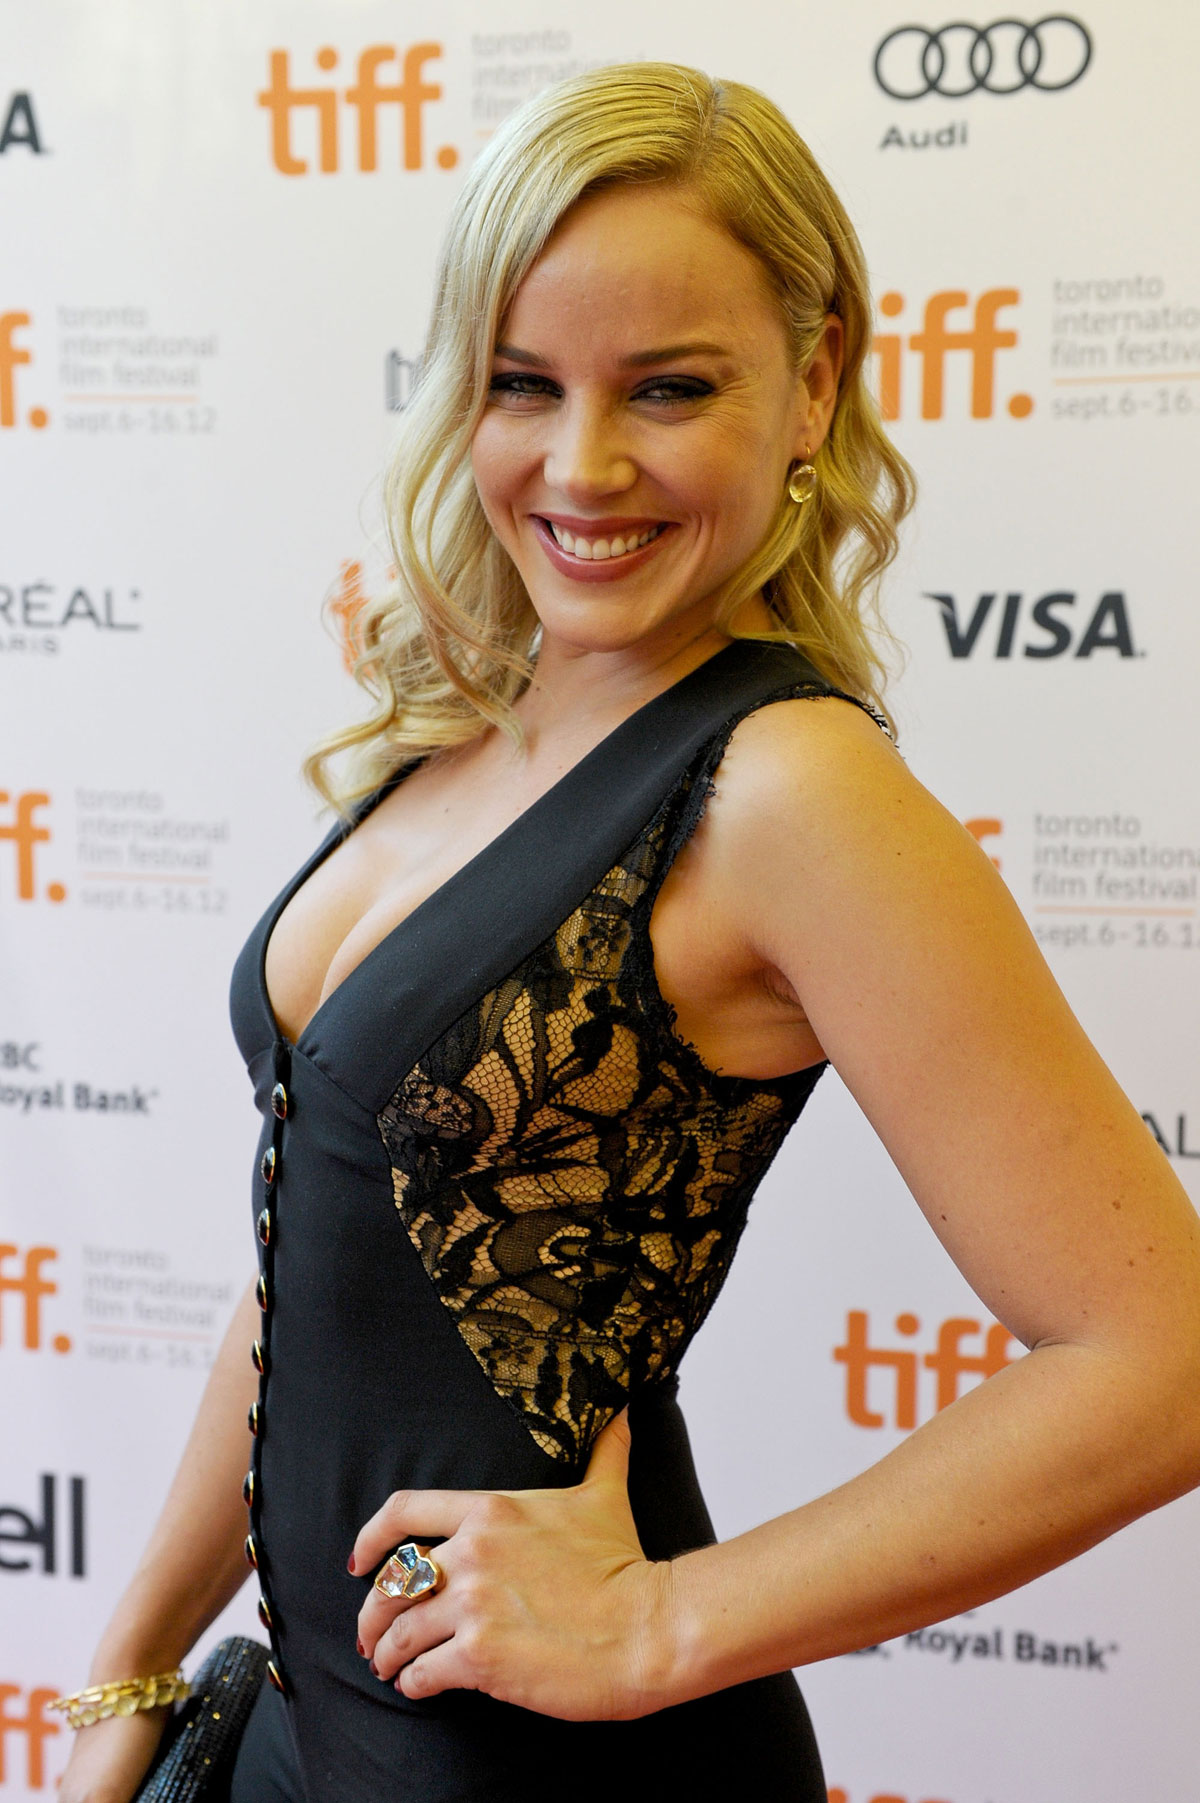 Abbie Cornish Archives - Page 3 of 4 - HawtCelebs - HawtCelebs Abbie Cornish